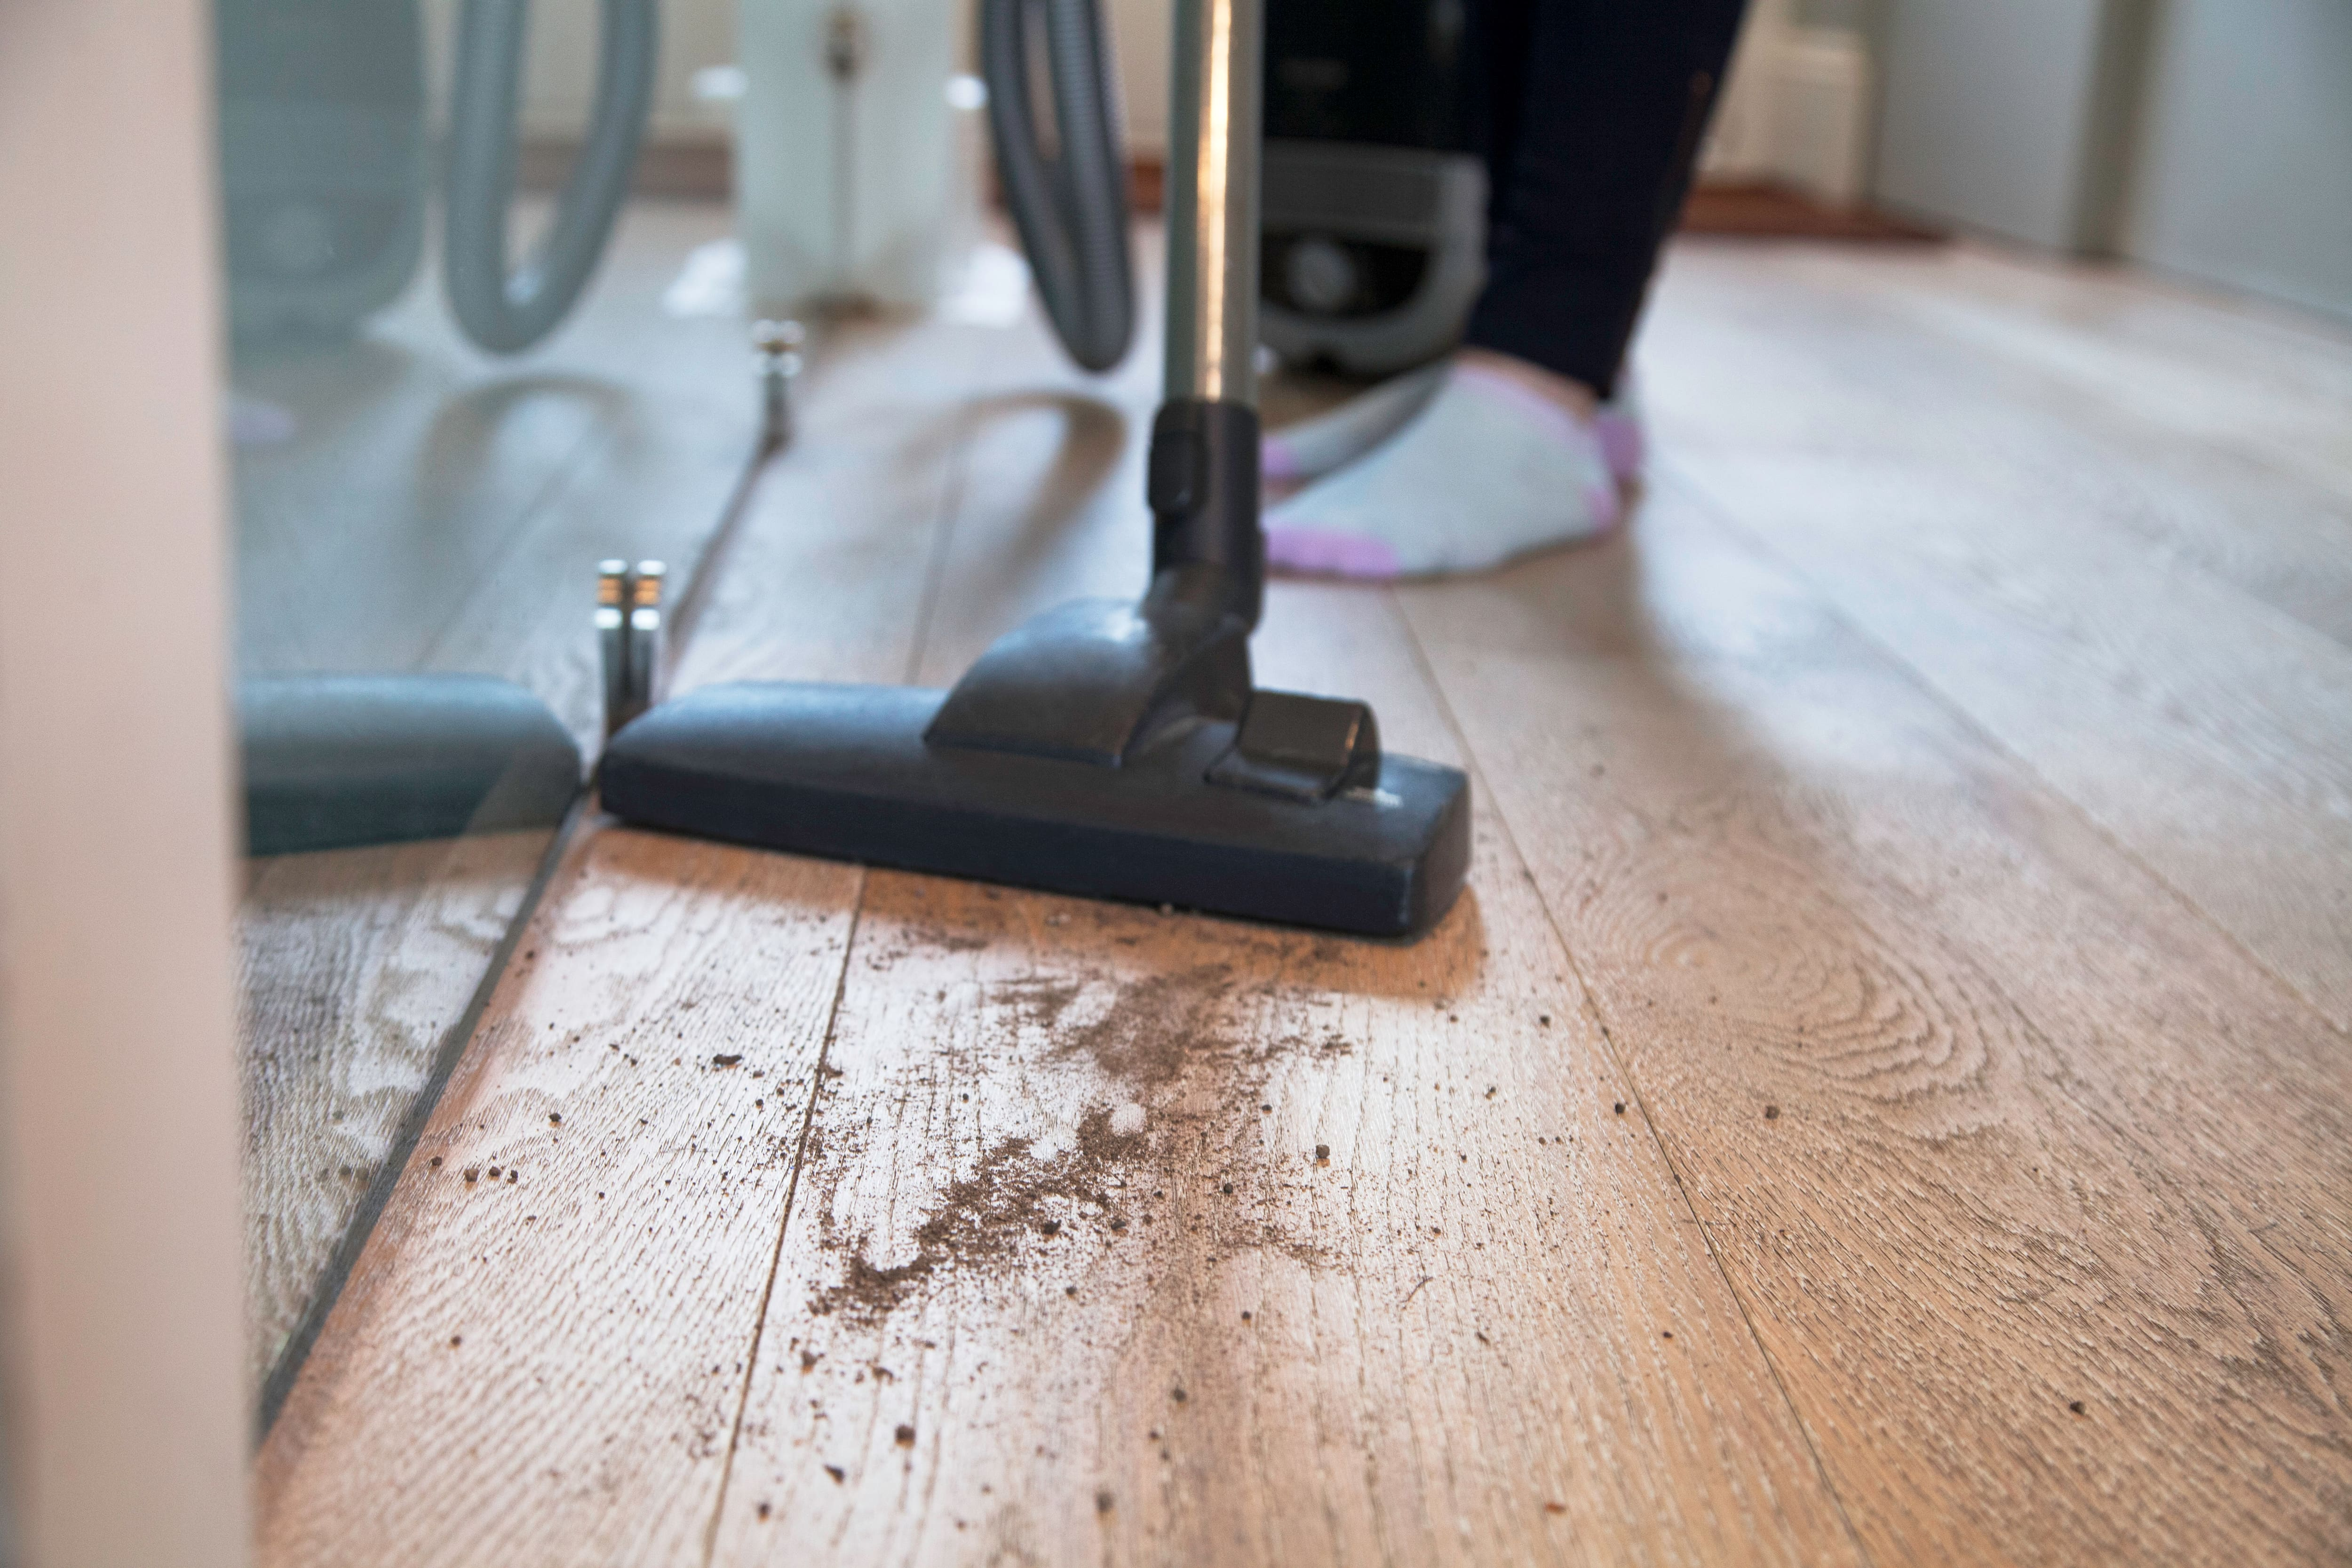 Can I Use A Vax Steam Cleaner On Laminate Floors